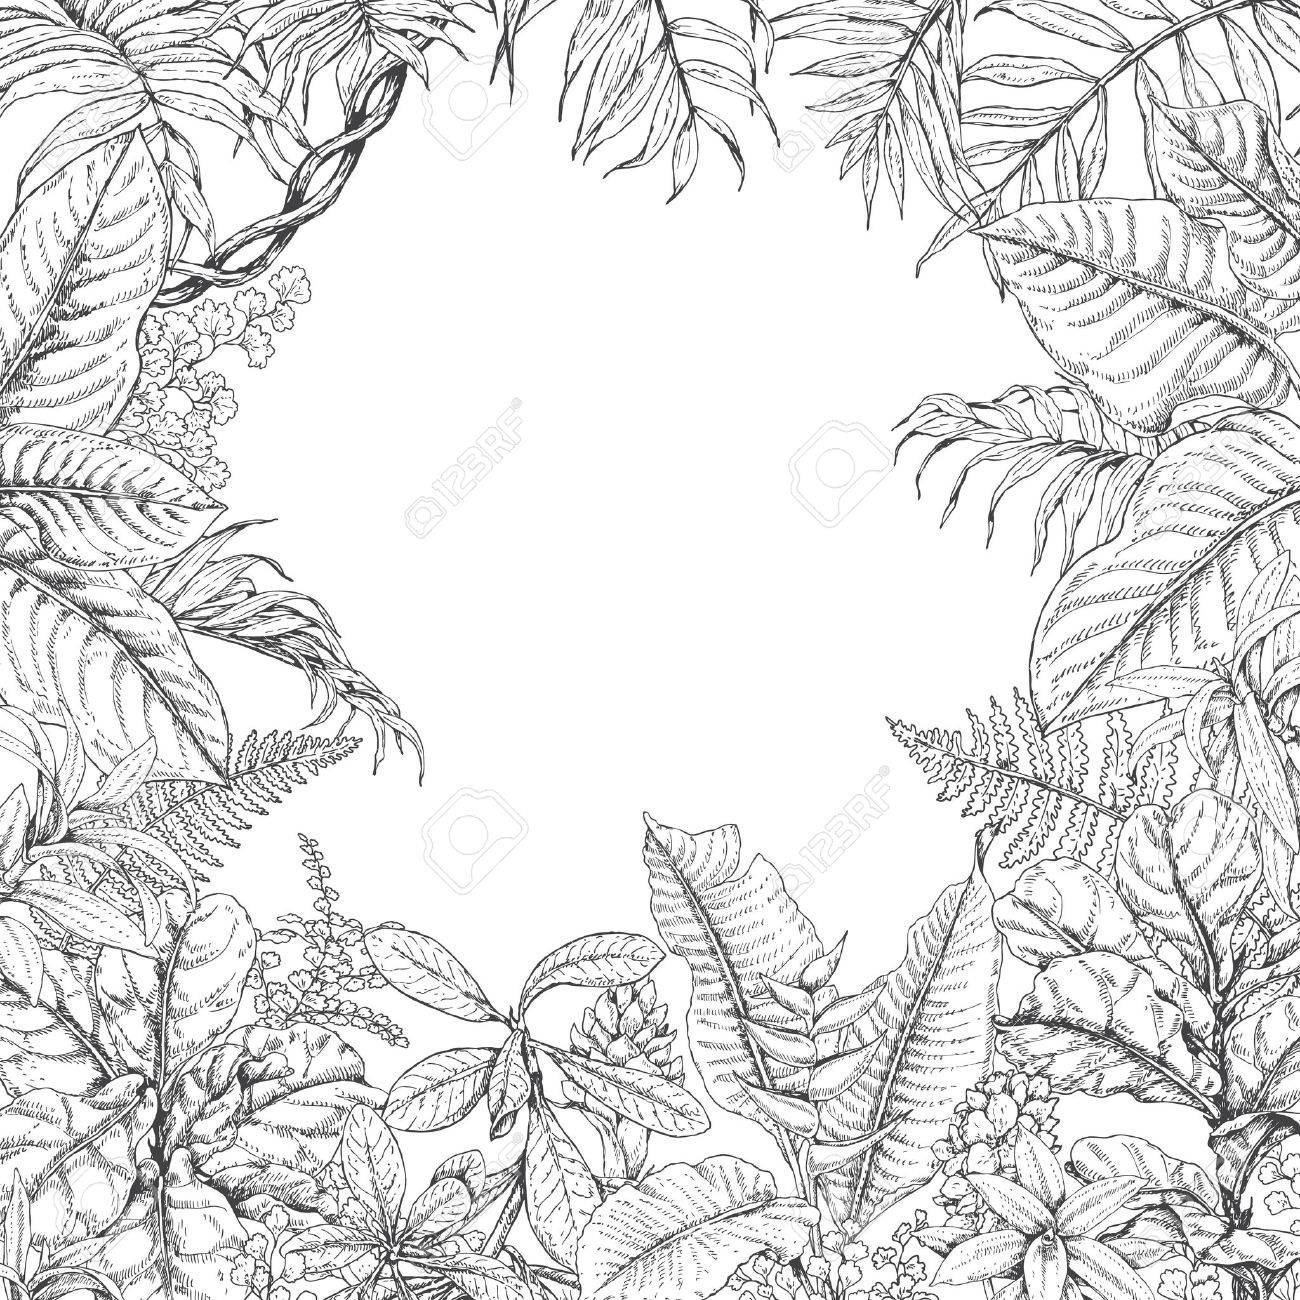 Black And White Illustration Coloring Page For Adult Hand Drawn Branches Leaves Of Tropical Plants Monochrome Square Floral Frame Dieffenbachia